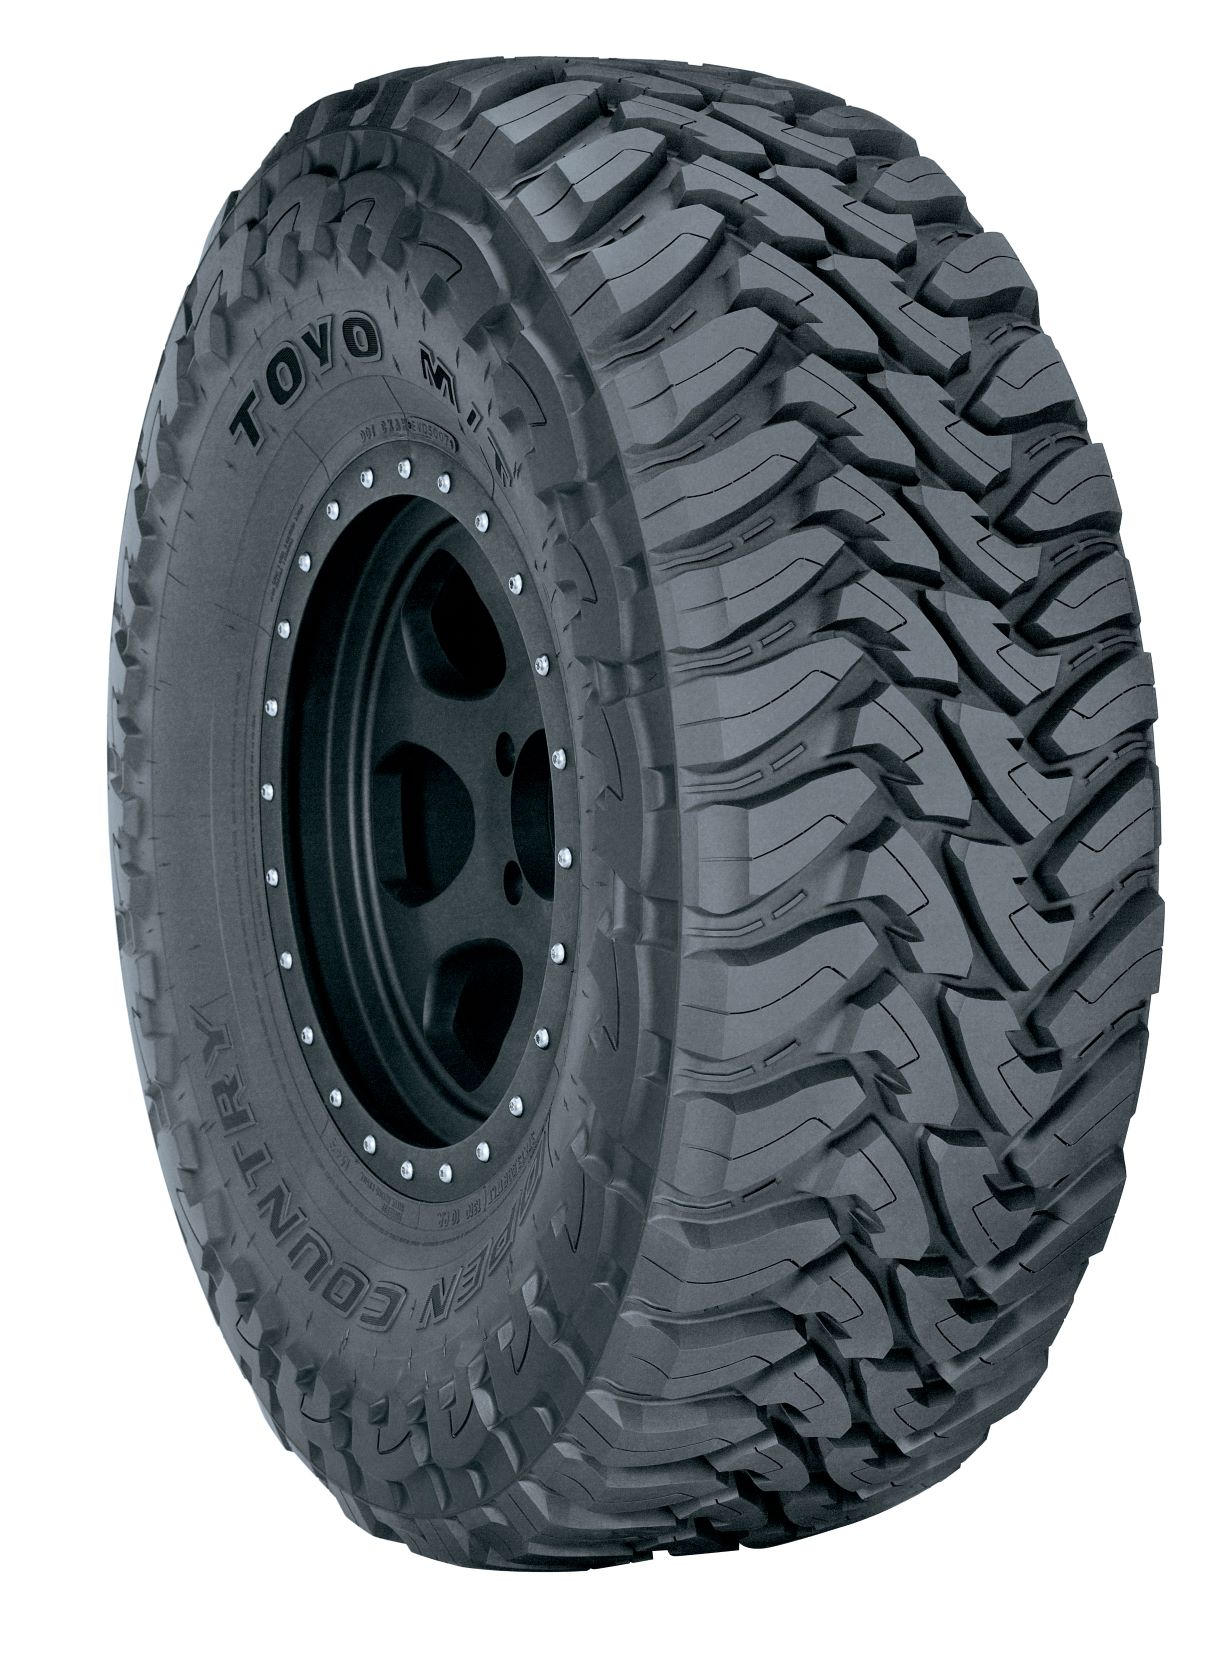 Toyo Releases 26-Inch Fitment for Open Country M/T